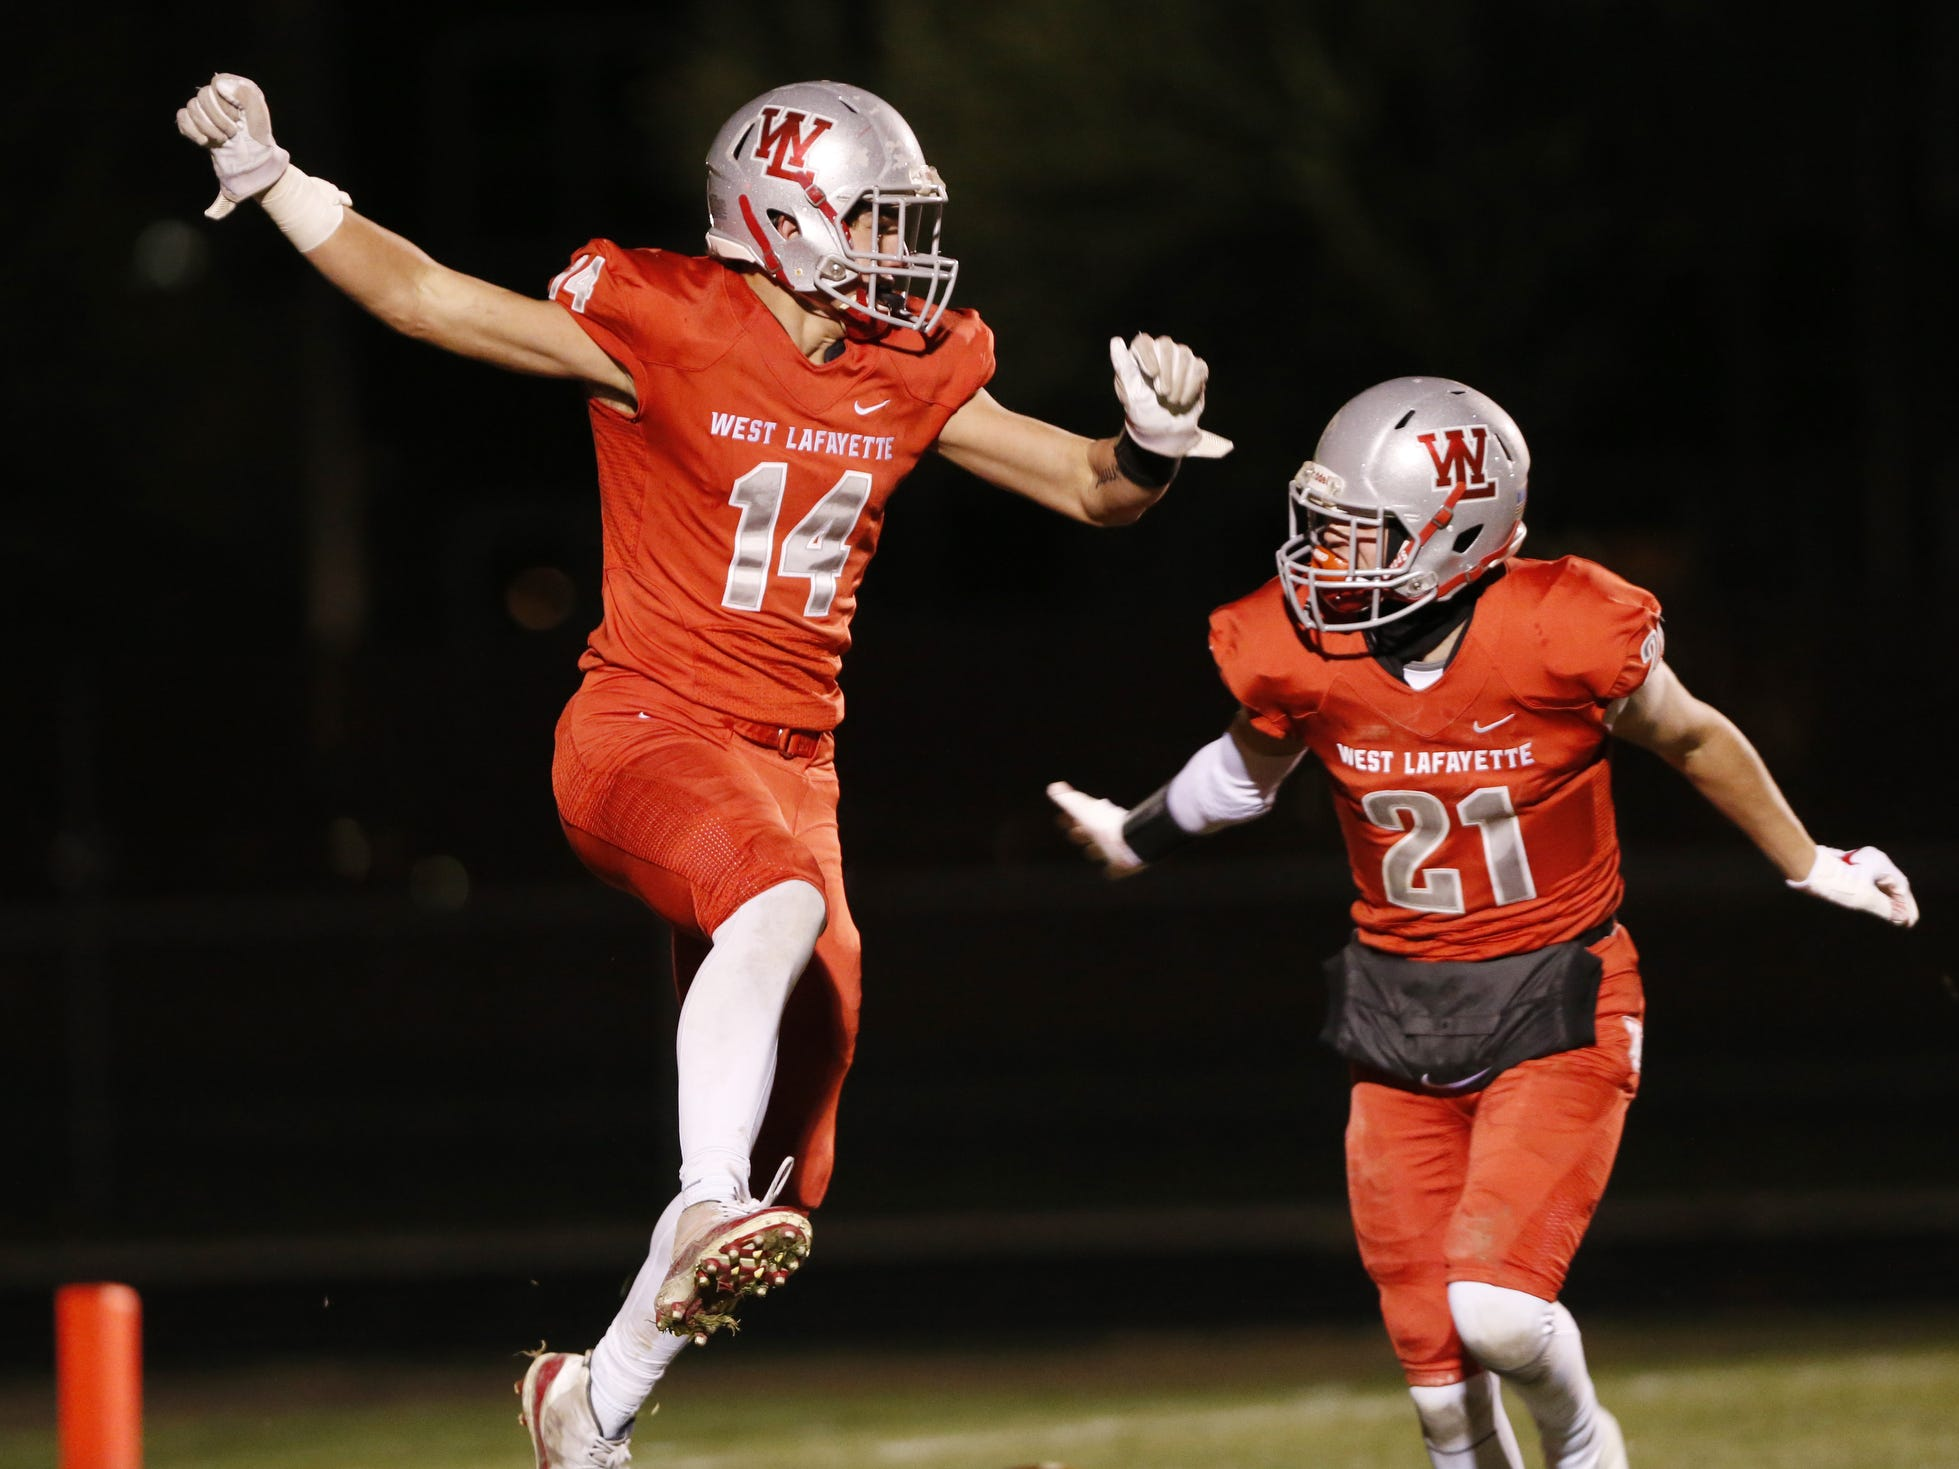 Yanni Karlaftis, left, of West Lafayette celebrates with teammate Harrison Truitt after his touchdown reception at 4:54 in the third quarter against Brebeuf in the football regional Friday, November 9, 2018, at Gordon Straley Field in West Lafayette. West Lafayette defeated Brebeuf 24-10.